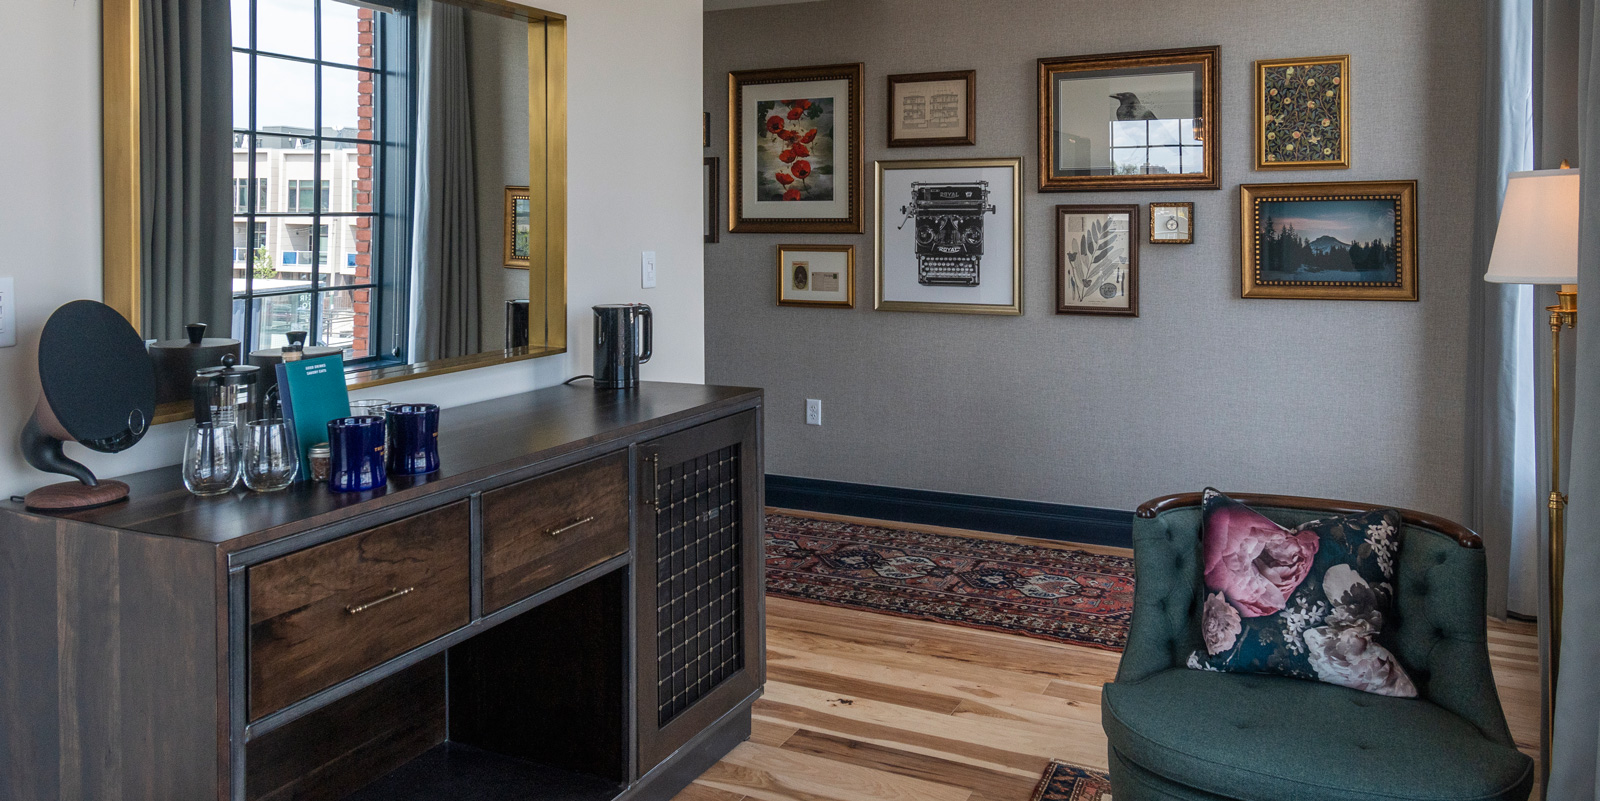 Wet bar of the Salon Suite inside The Ramble Hotel. Choose your favorite drink to serve up for guests. The art decorated hallway takes you to the bedroom and bathroom areas.